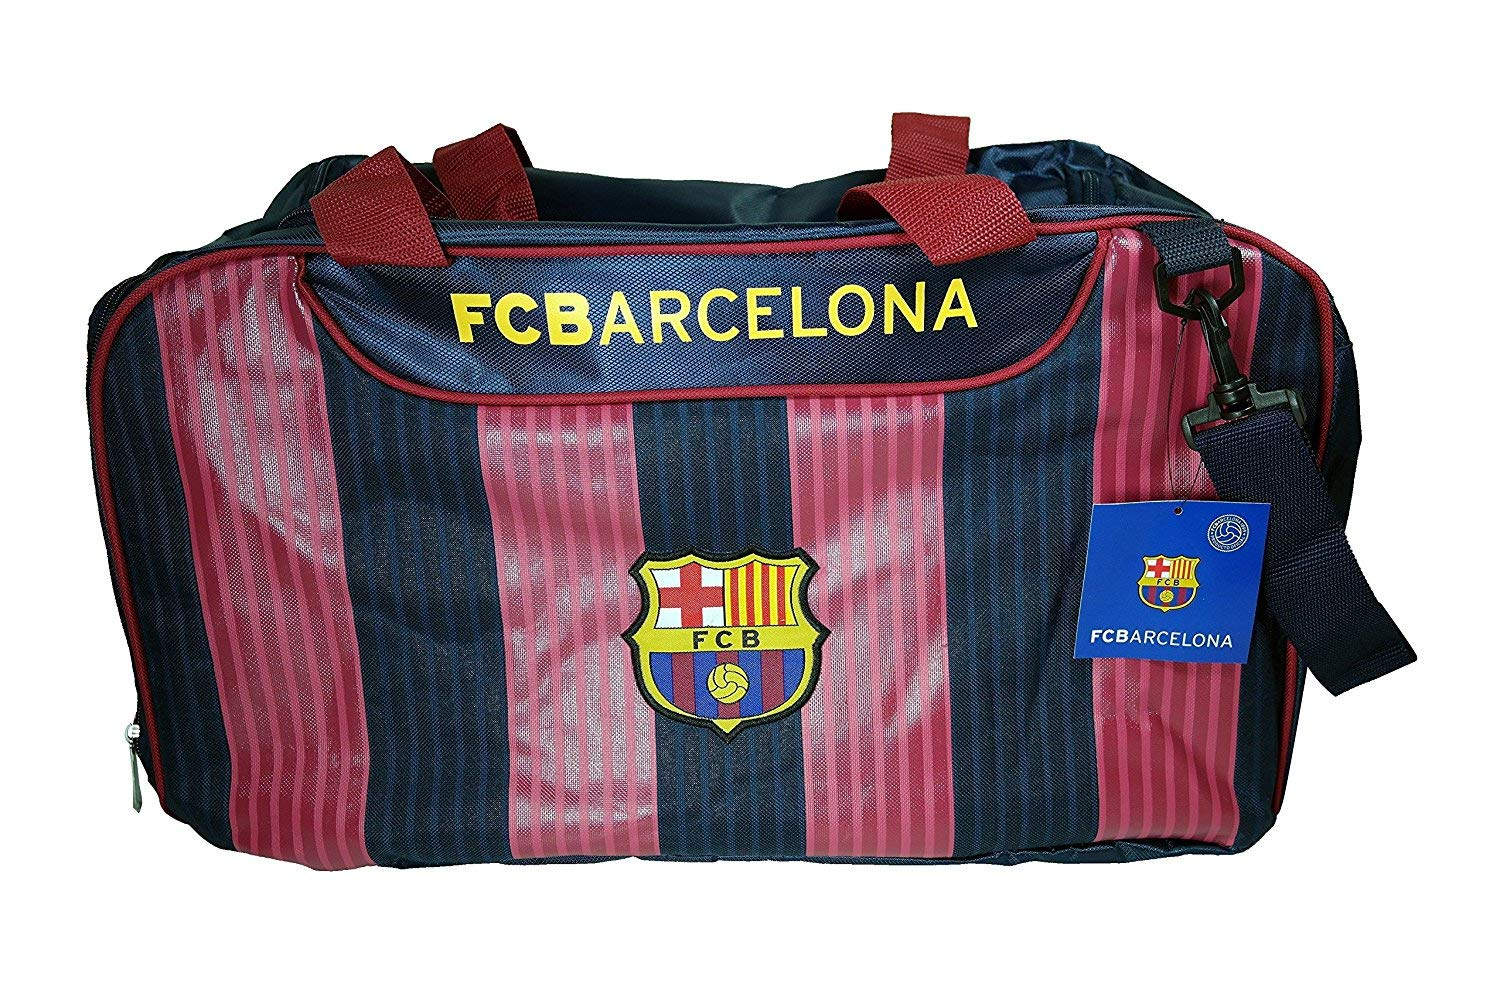 Amazon.com : FCB Barcelona Duffle Bag, Barcelona Ball Size 5 and One Messi Water Bottle : Sports & Outdoors